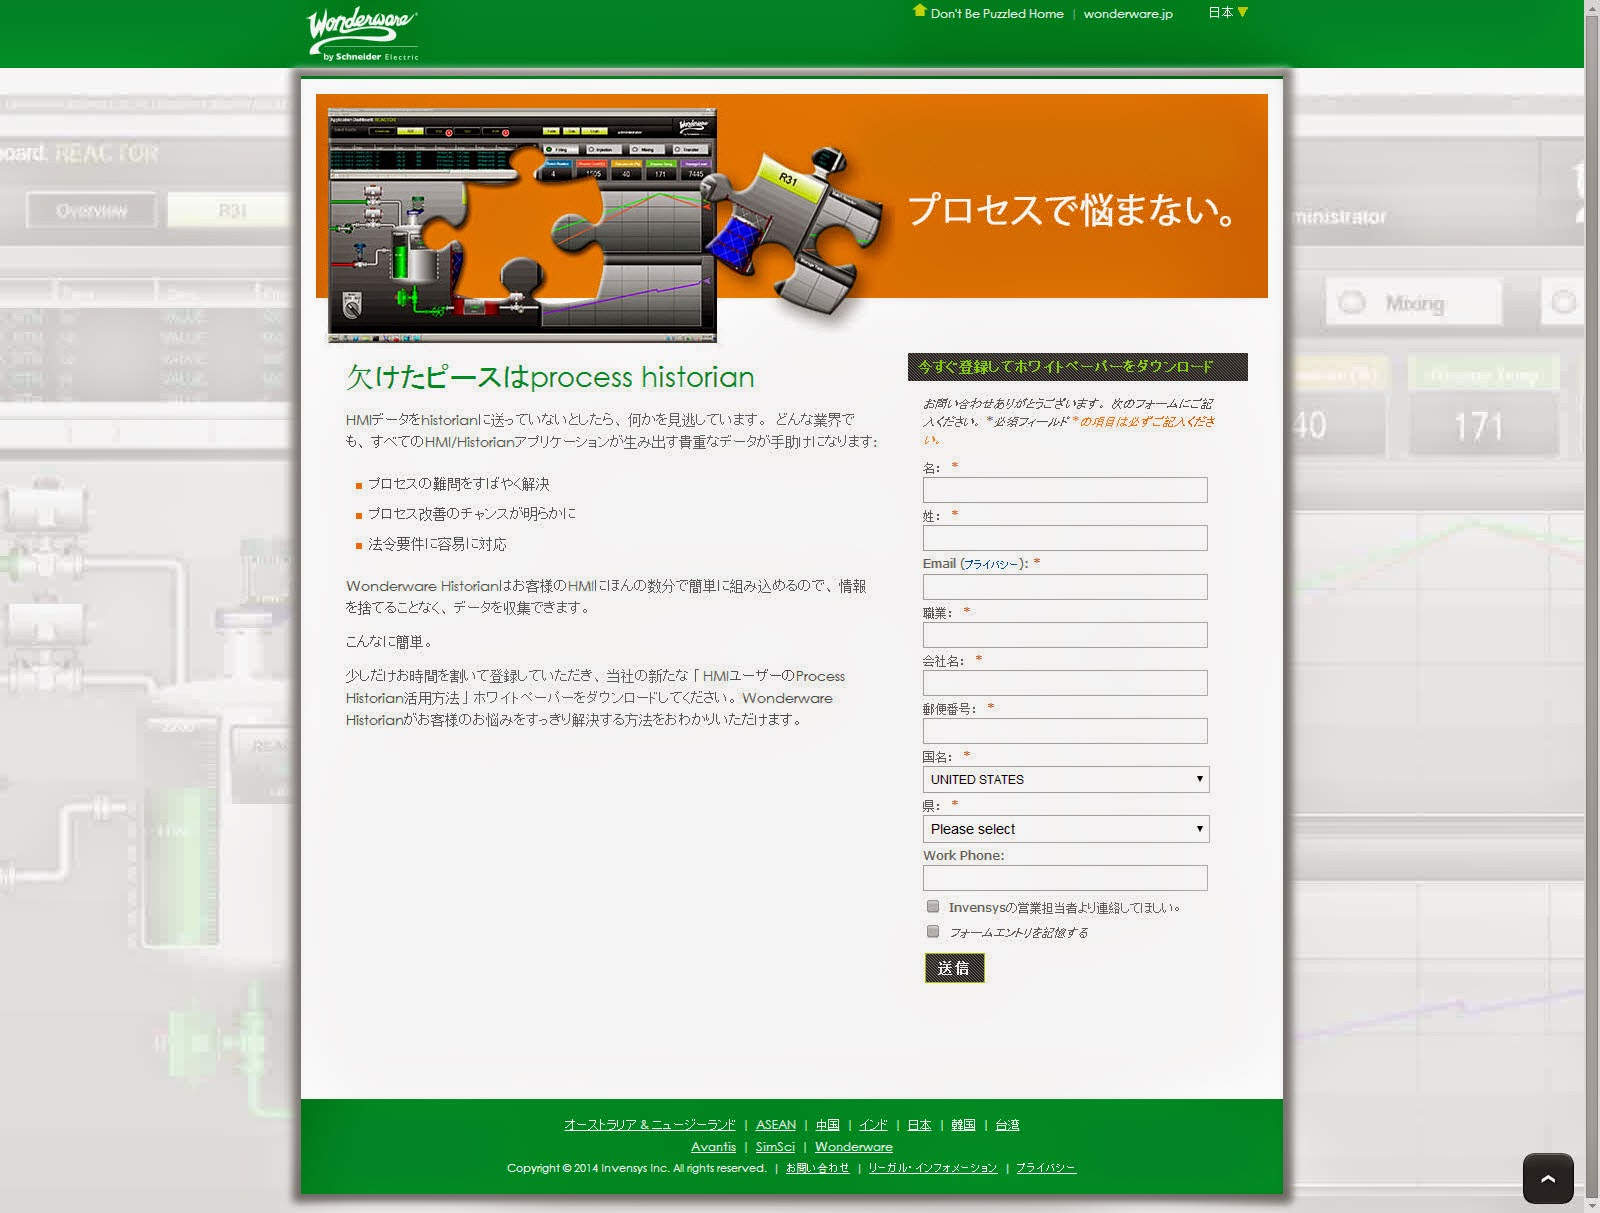 http://campaigns.wonderware.com/campaigns/Pages/wonderware-historian-JP.aspx